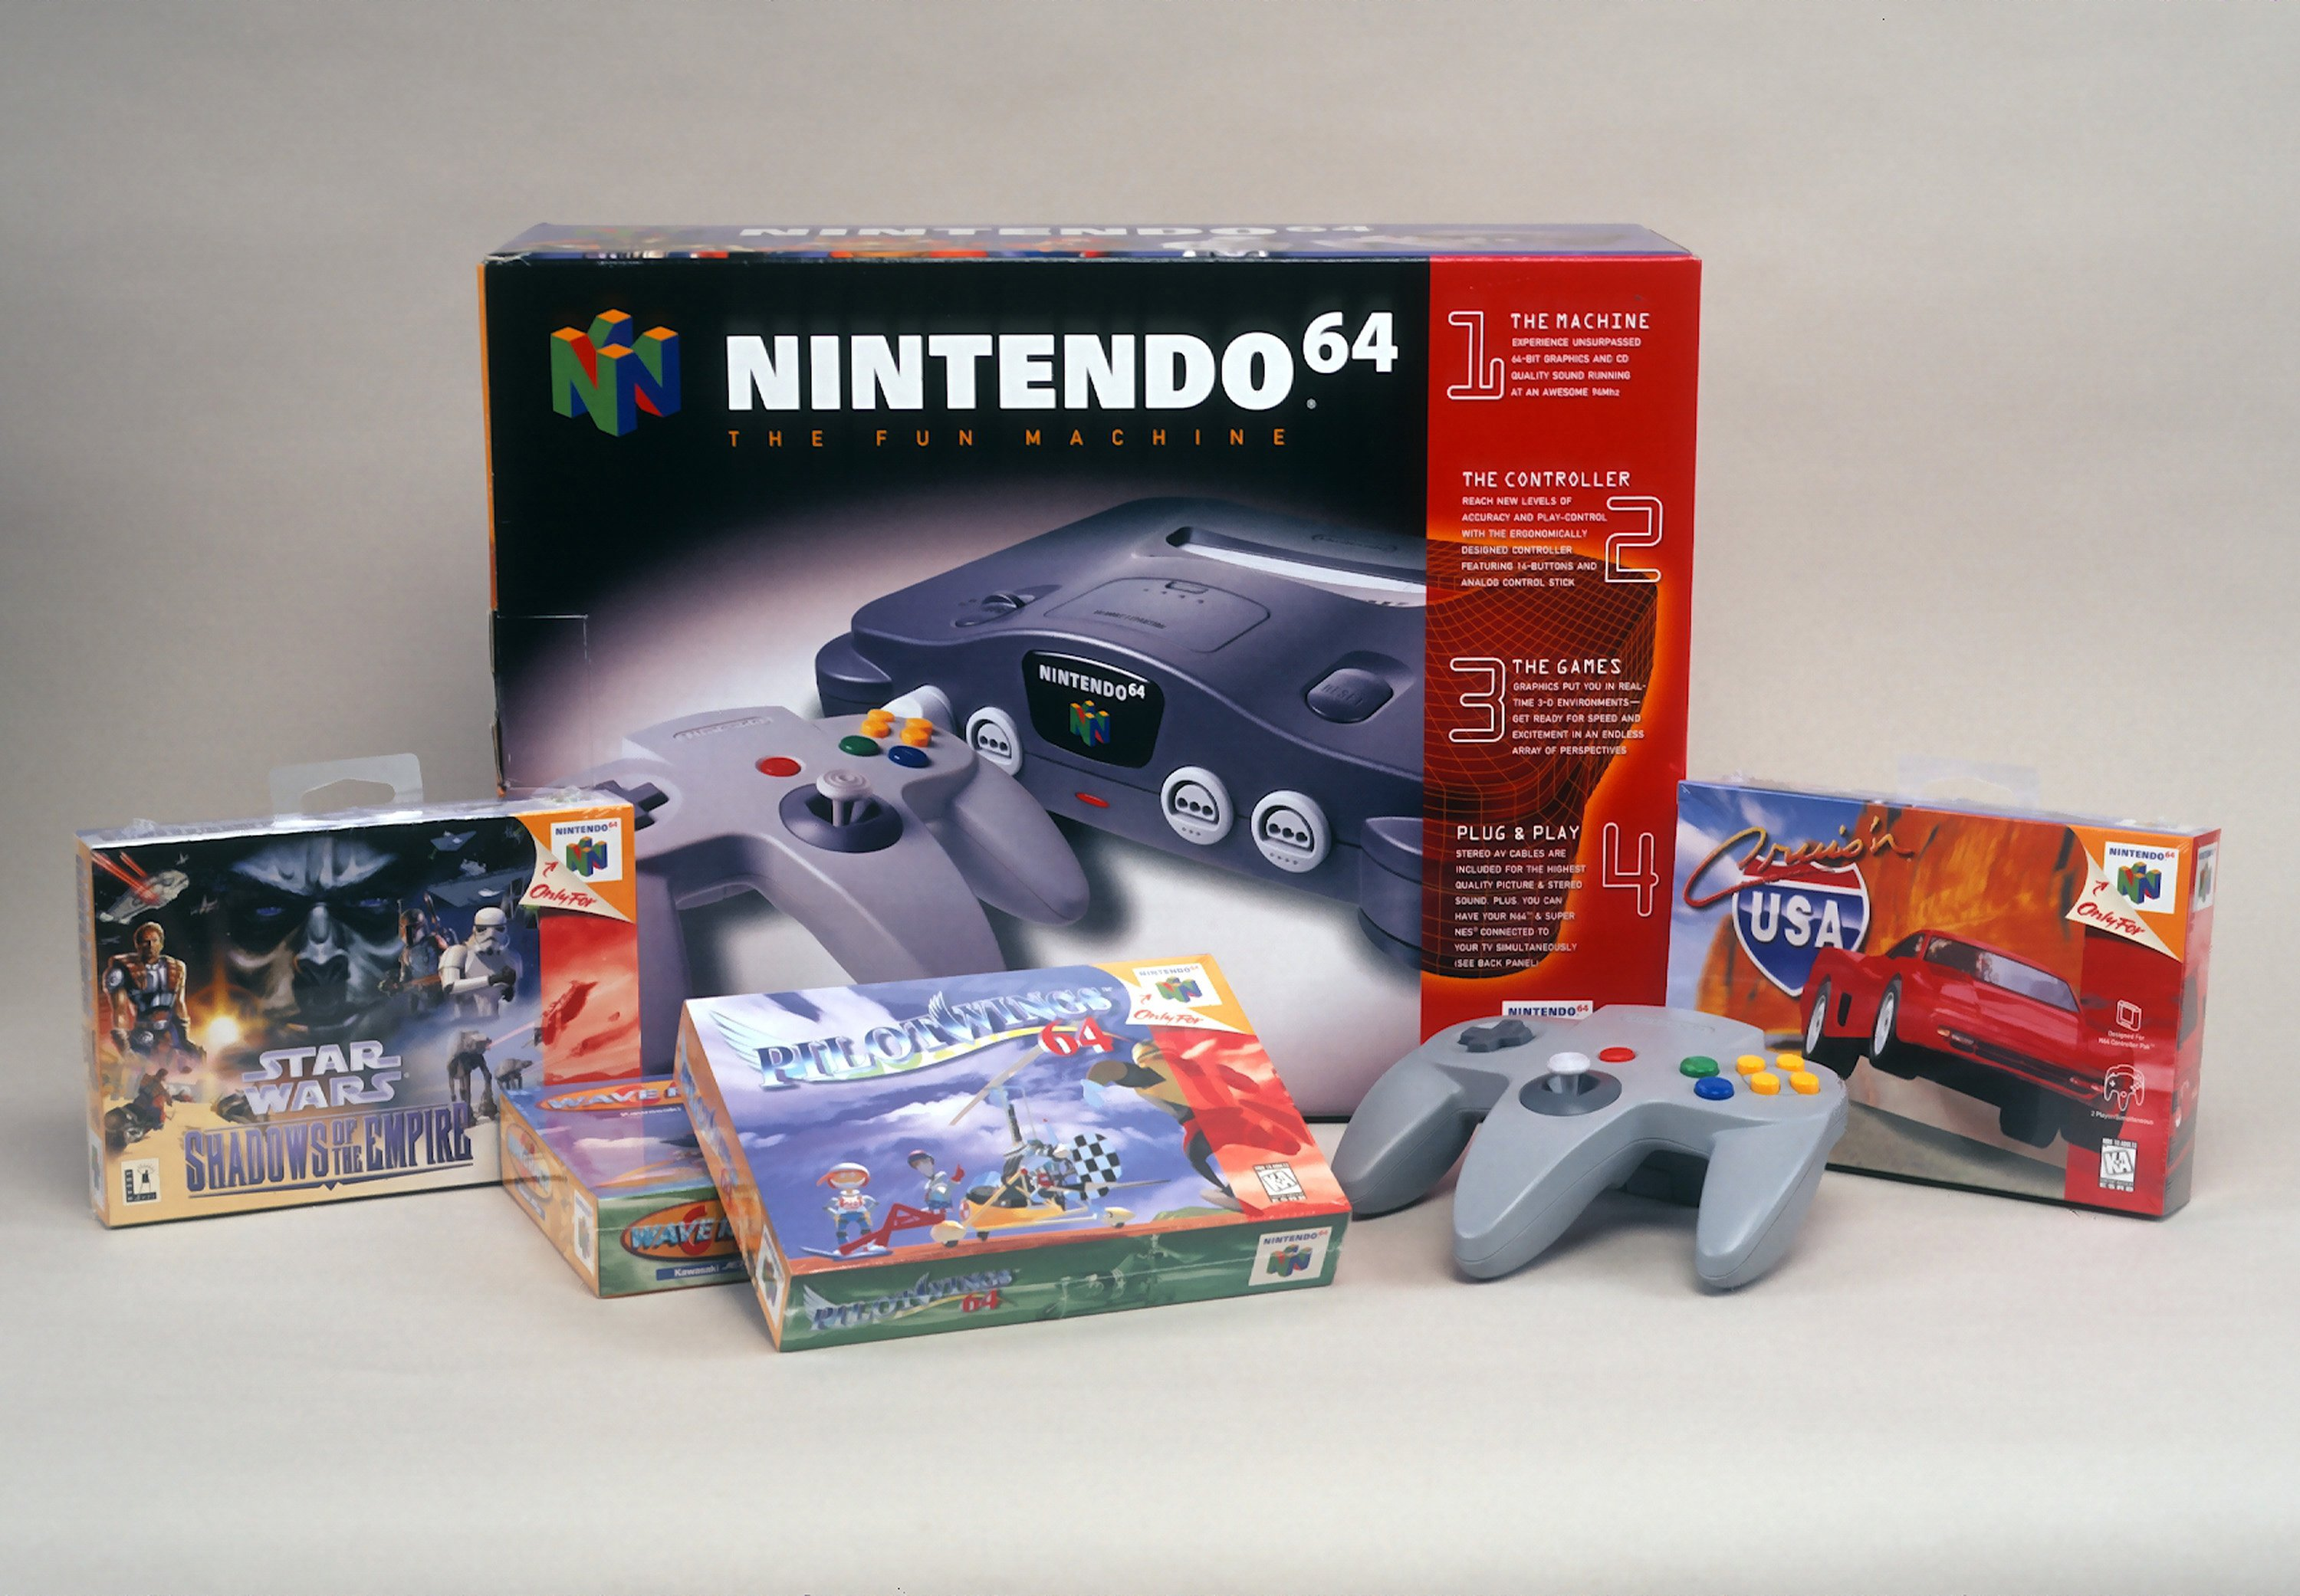 Nintendo 64 box and games